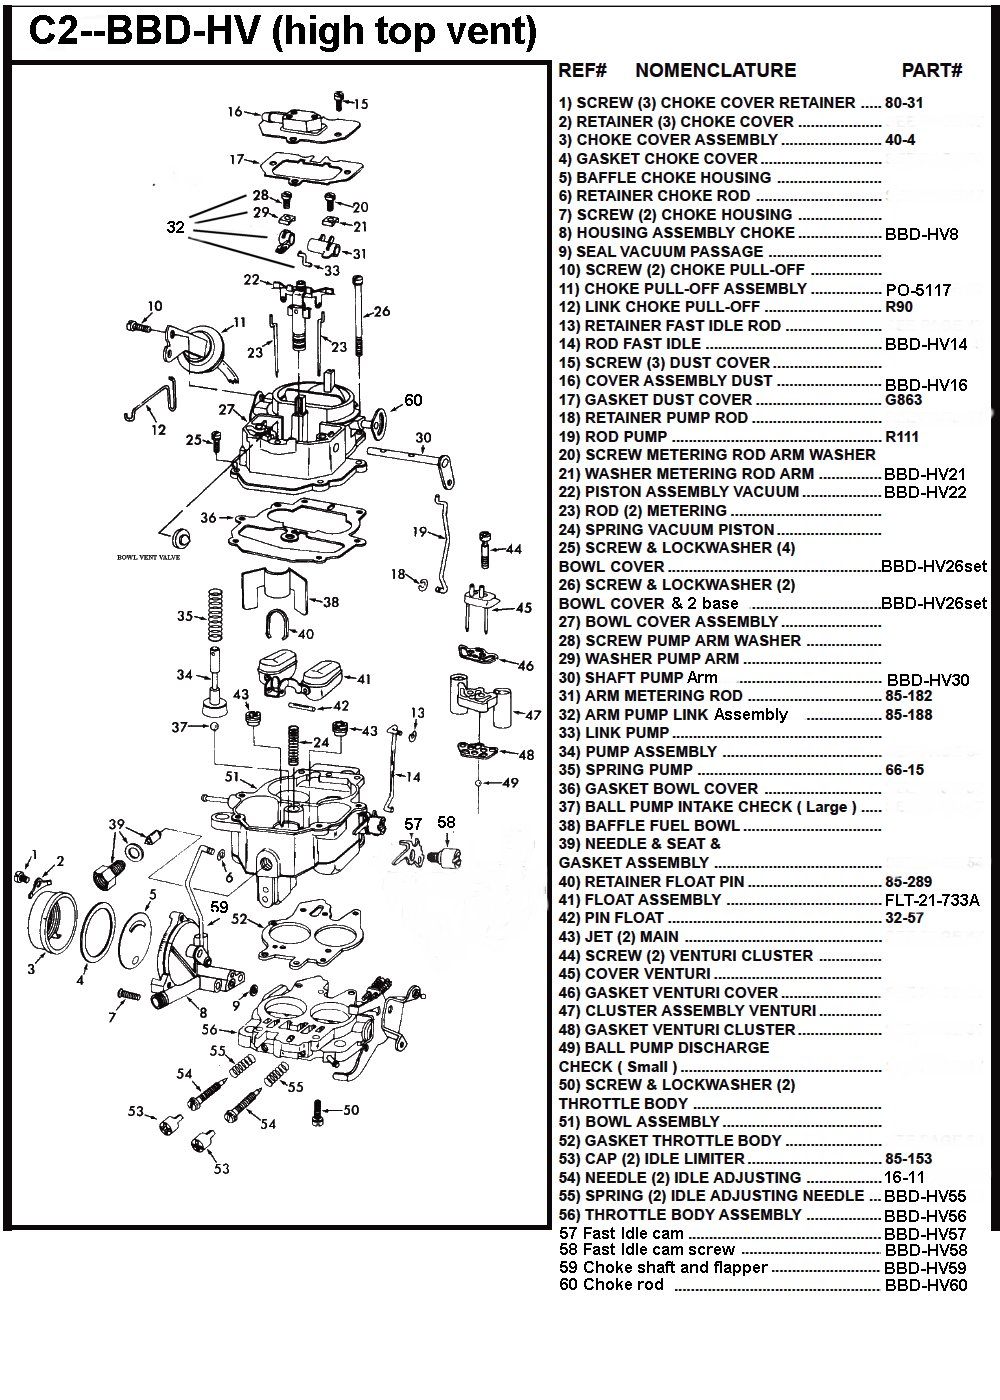 C Bbd Hv on Carter Carburetor Diagram